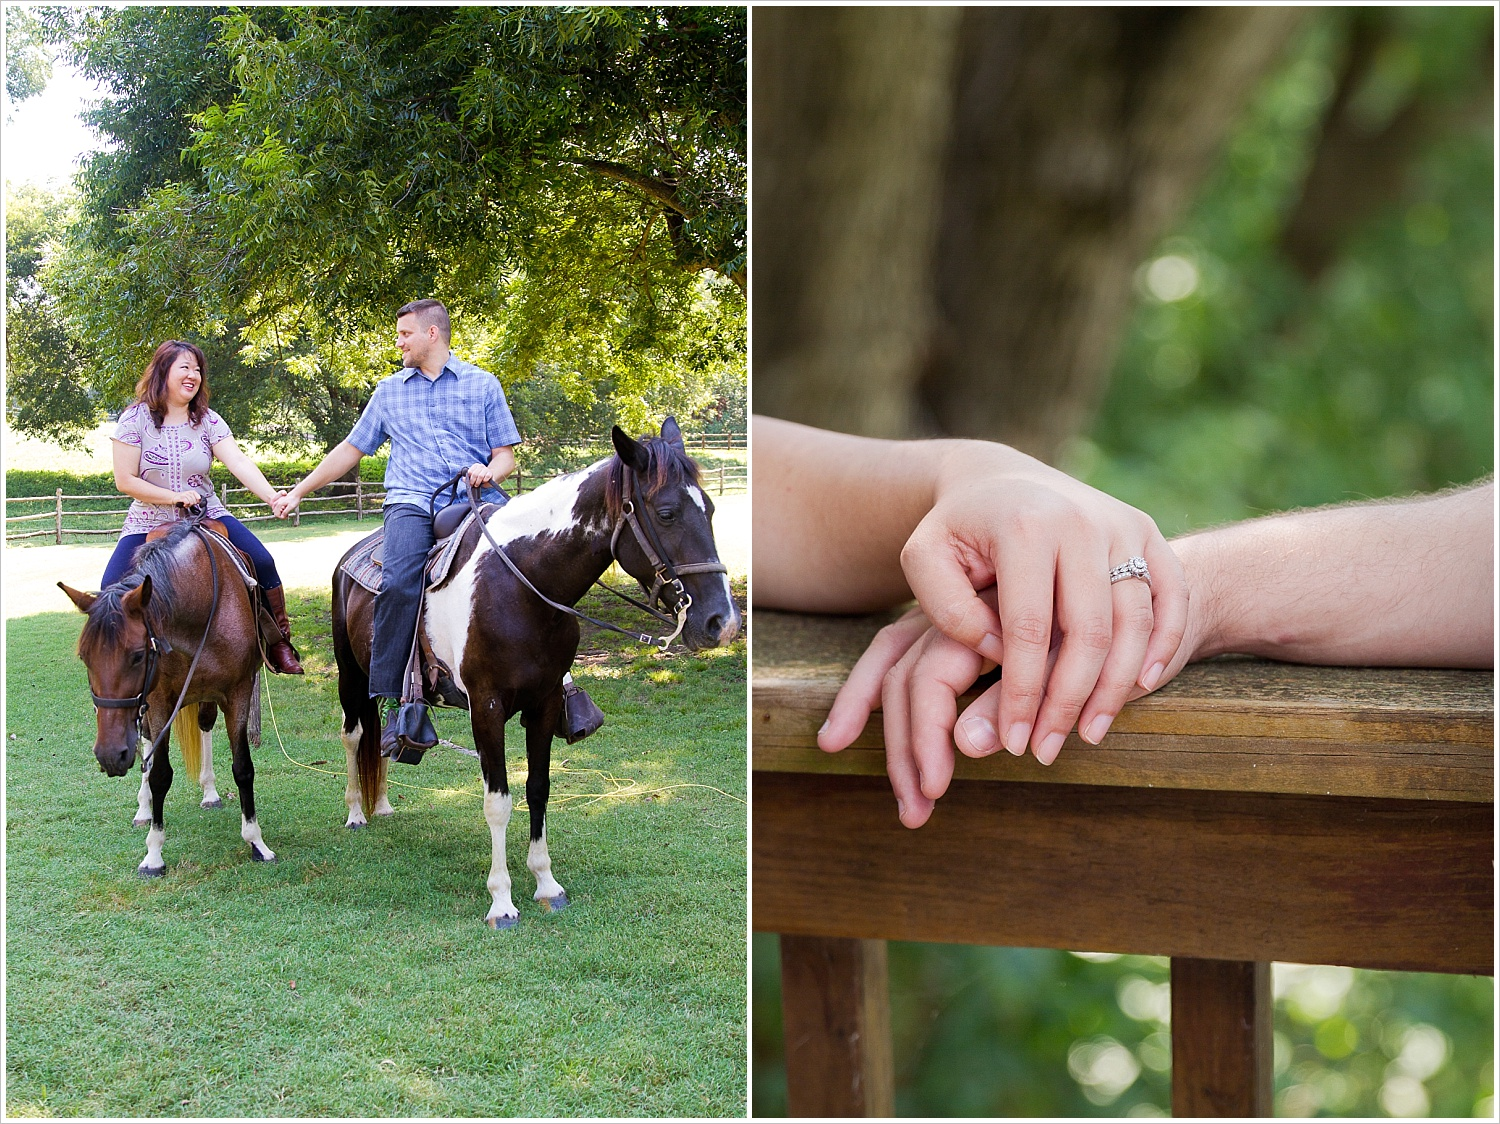 A couple rides horses together during their engagement portraits at Brazos Bluffs Ranch in Waco, Texas - Jason & Melaina Photography, www.jasonandmelaina.com